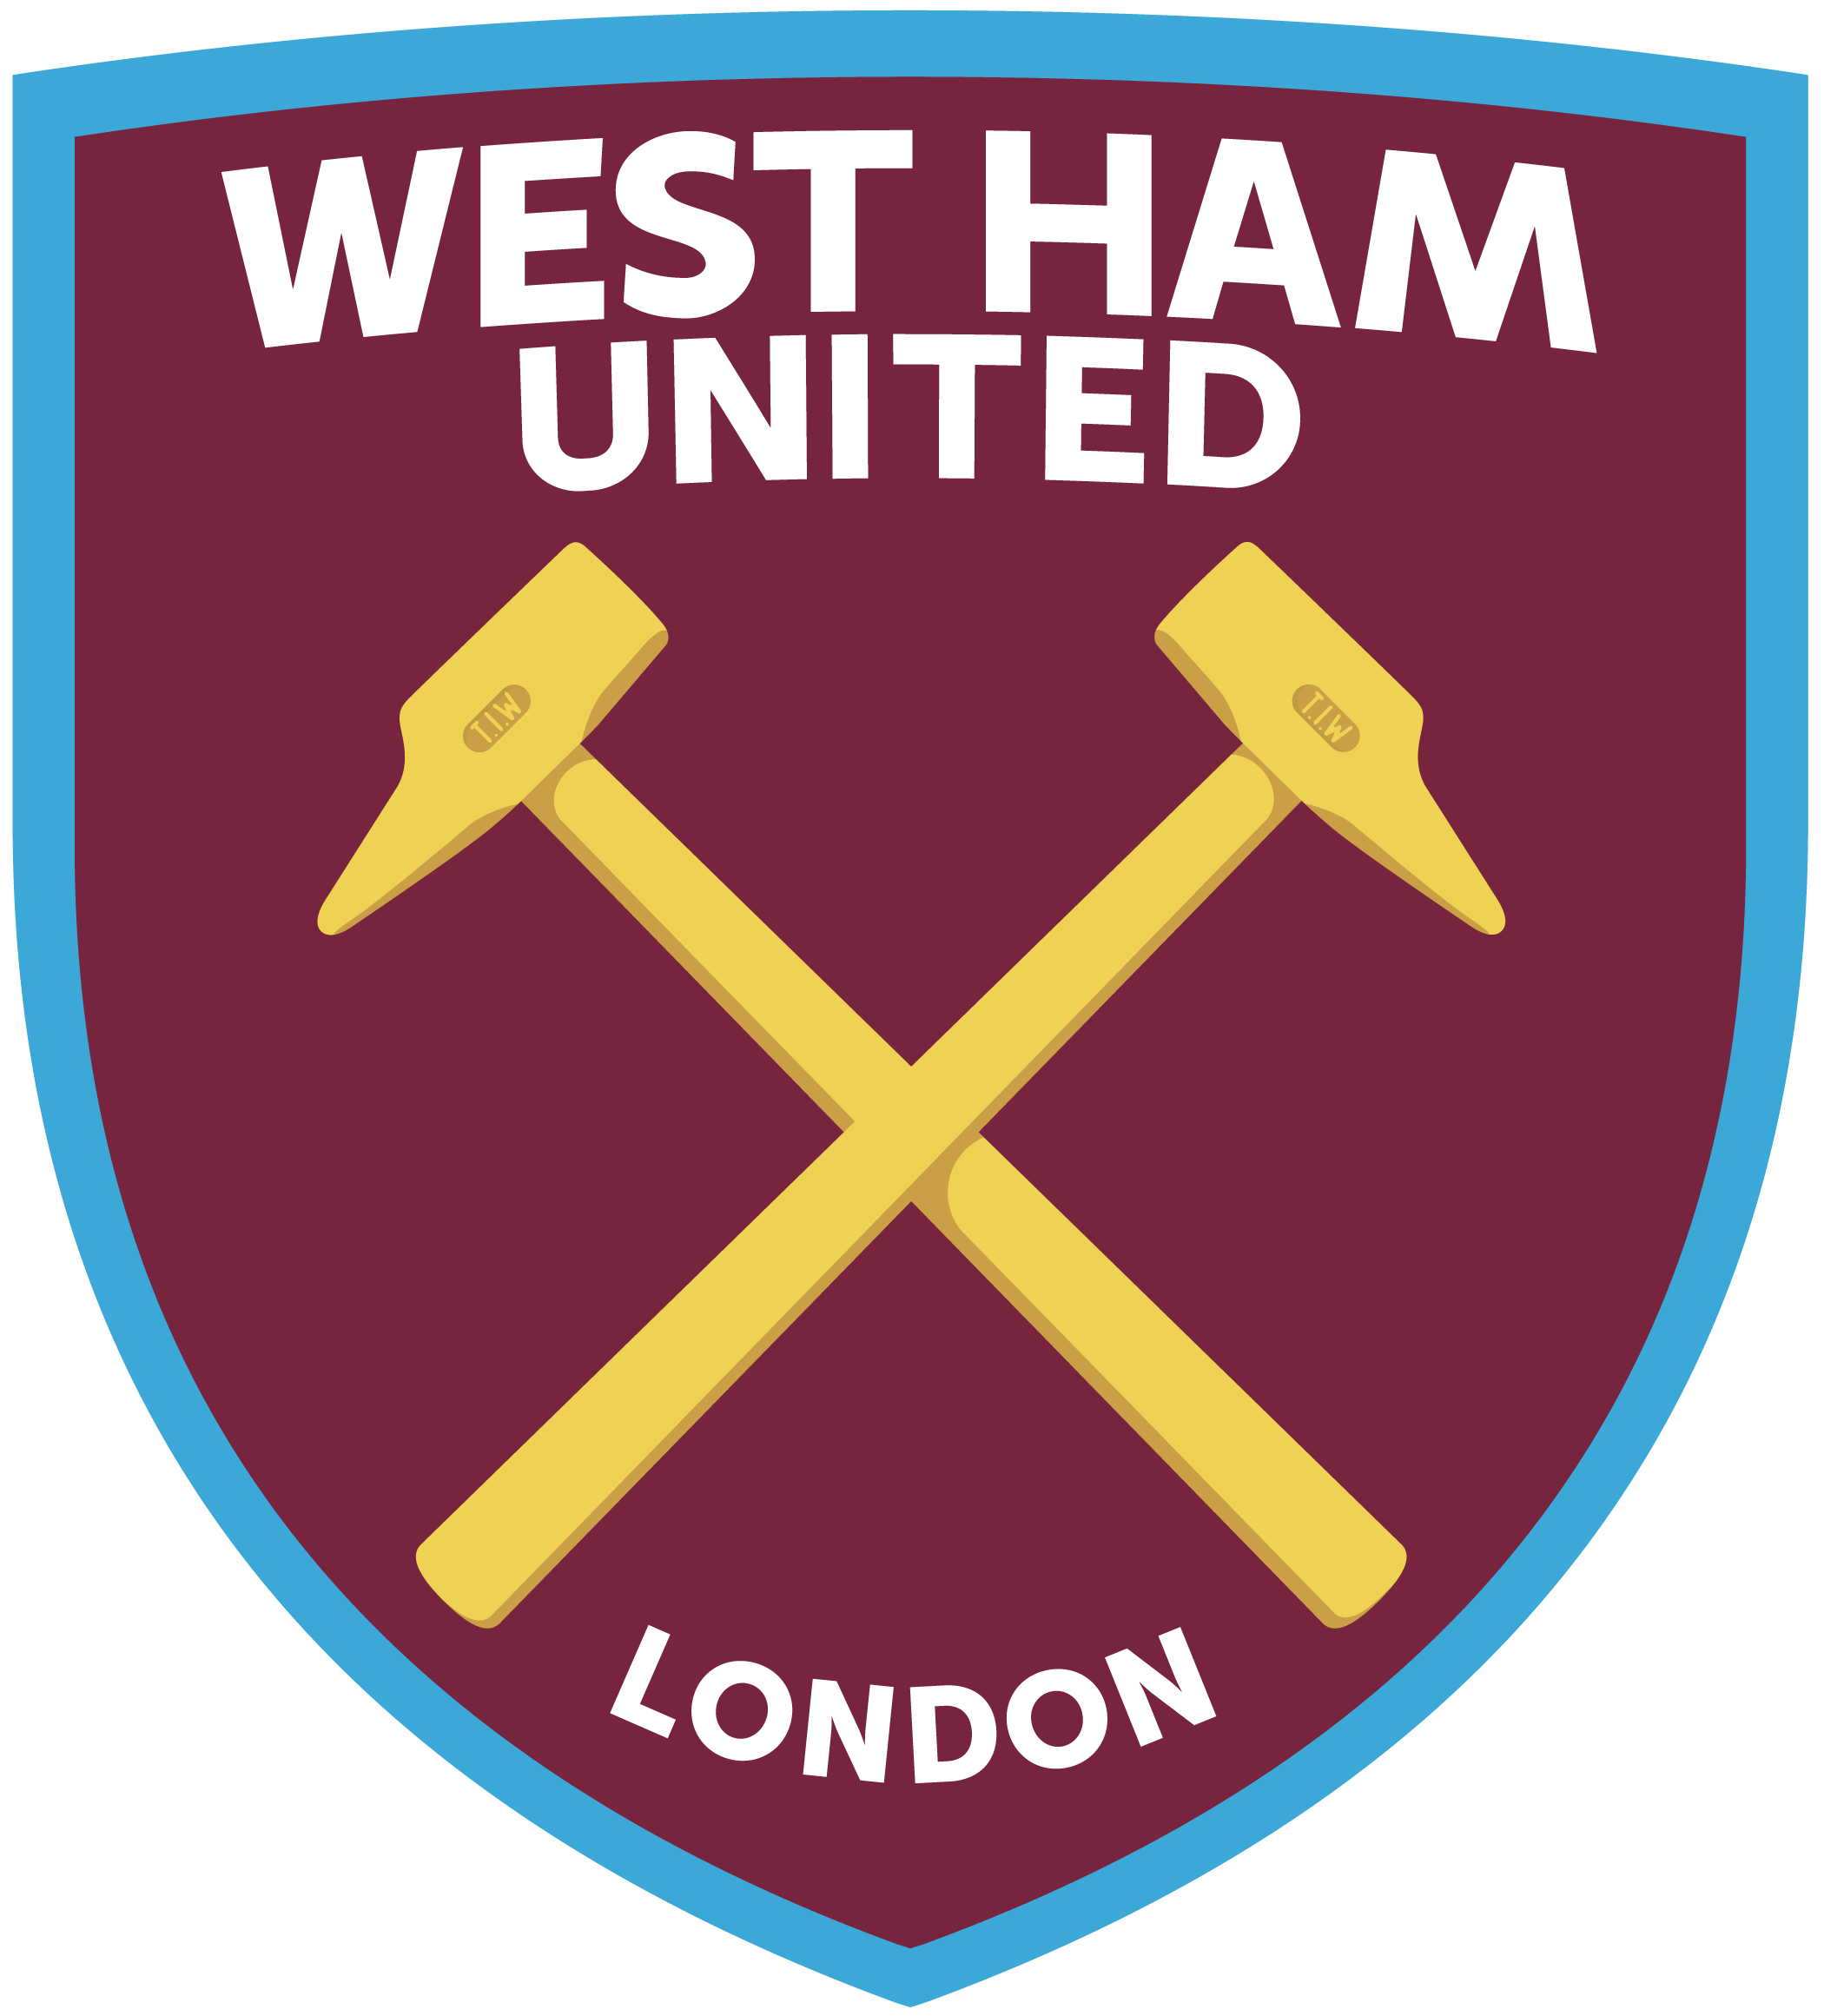 west ham united logo 1 - West Ham United FC Logo